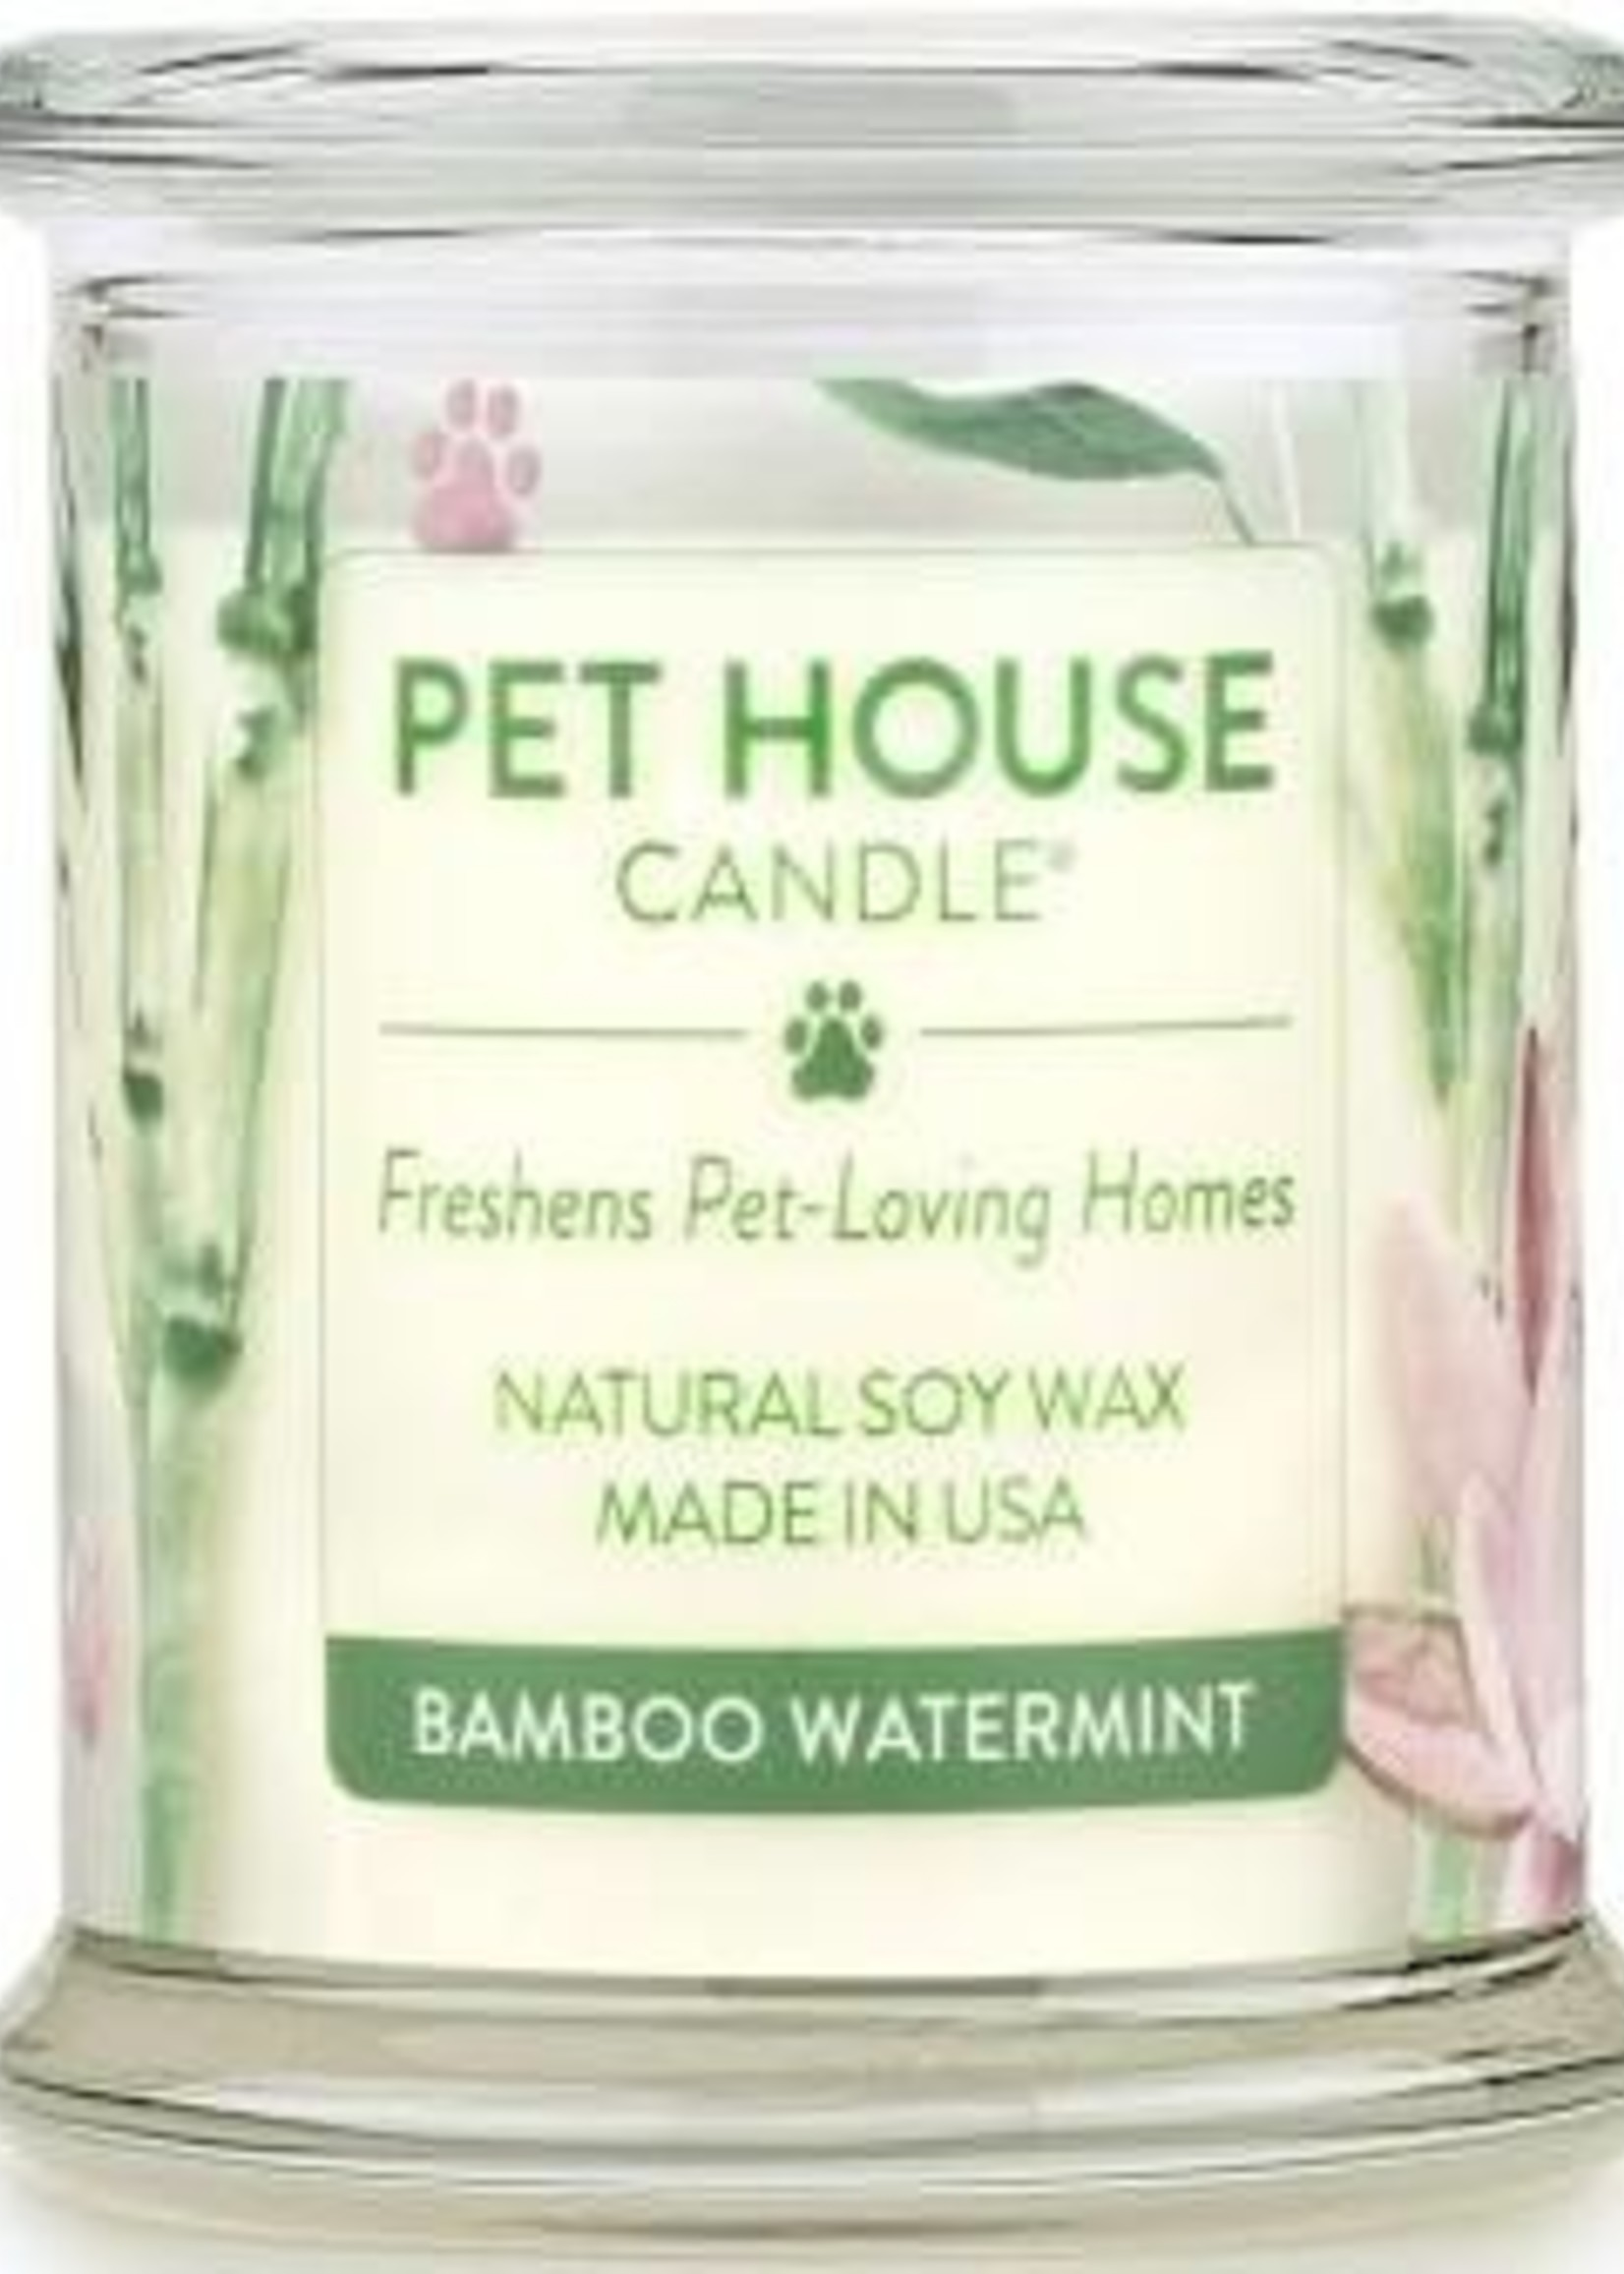 Pet House Candle Pet House Candle Bamboo Watermint